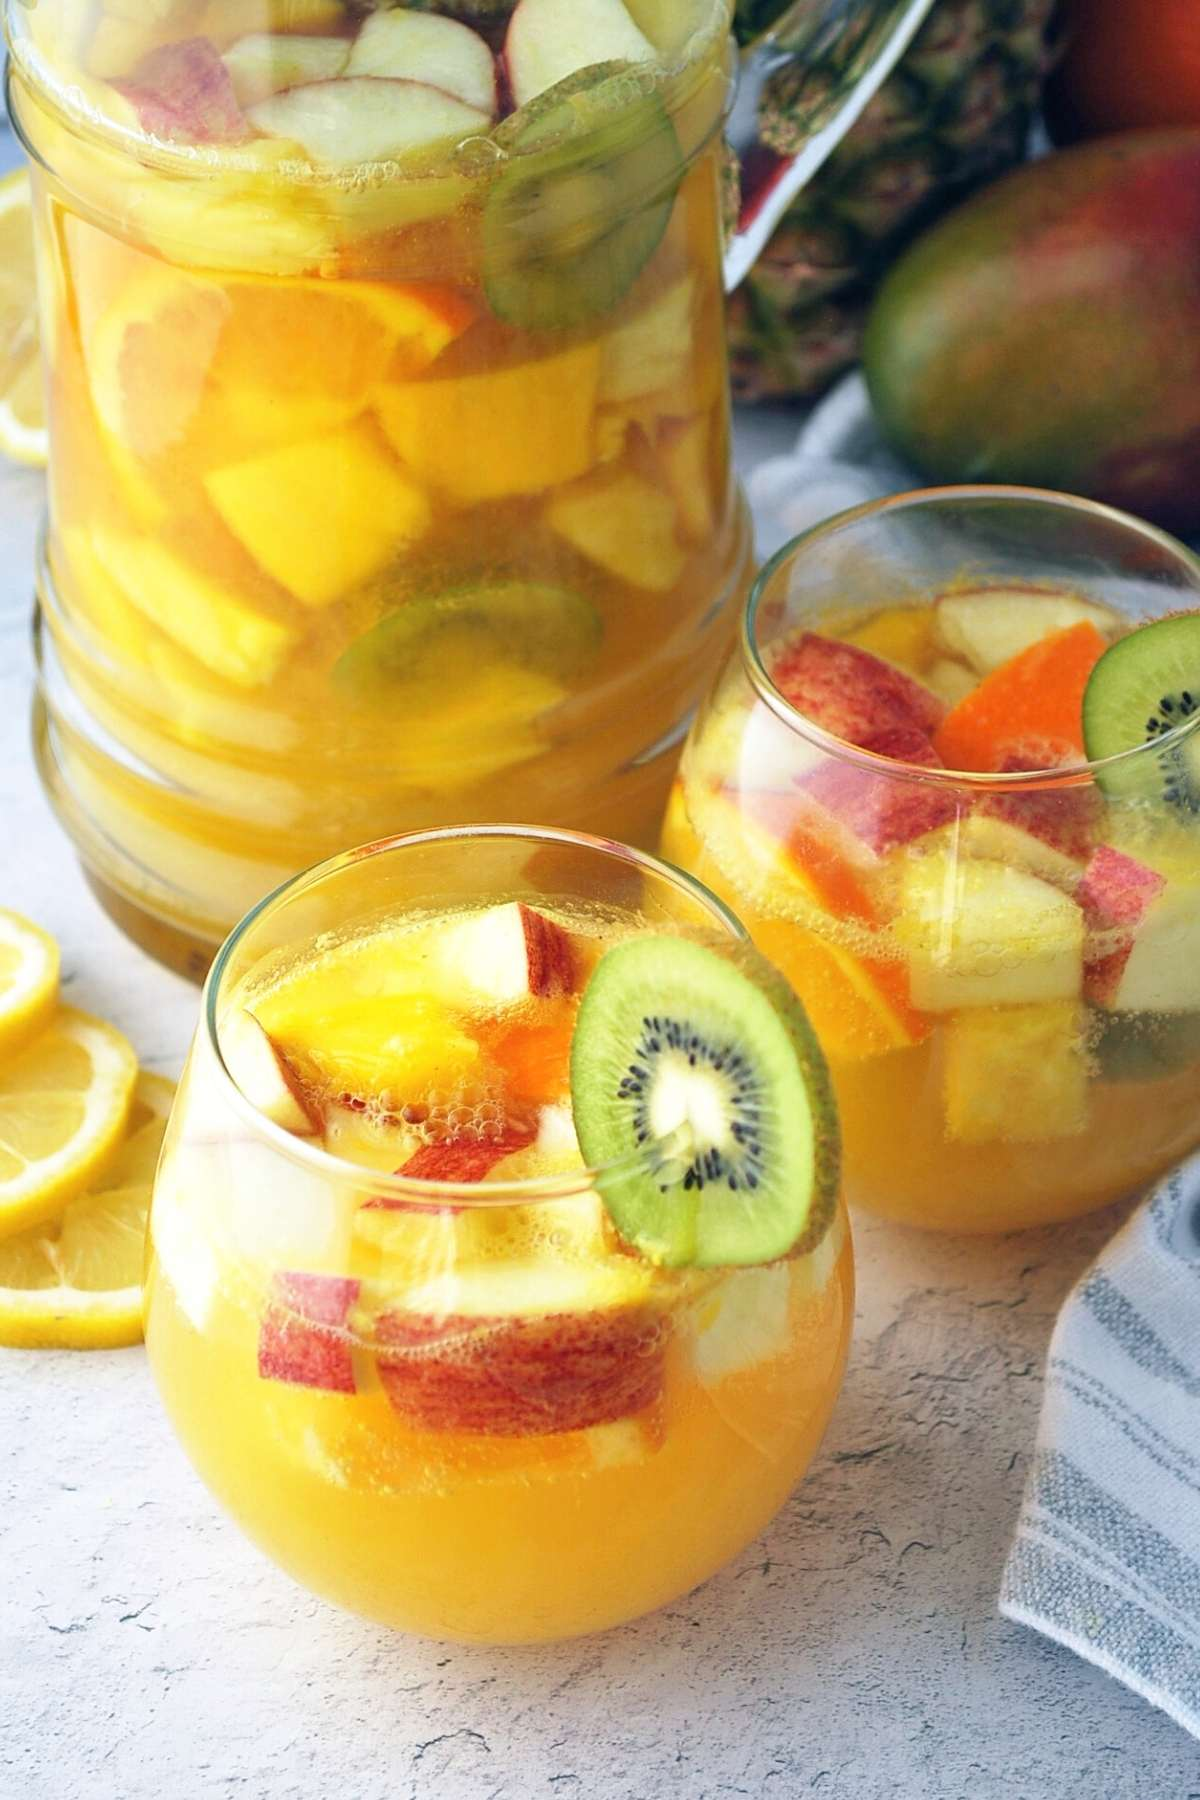 close up of two glasses of tropical sangria garnished with kiwi slices and a pitcher of sangria in the background